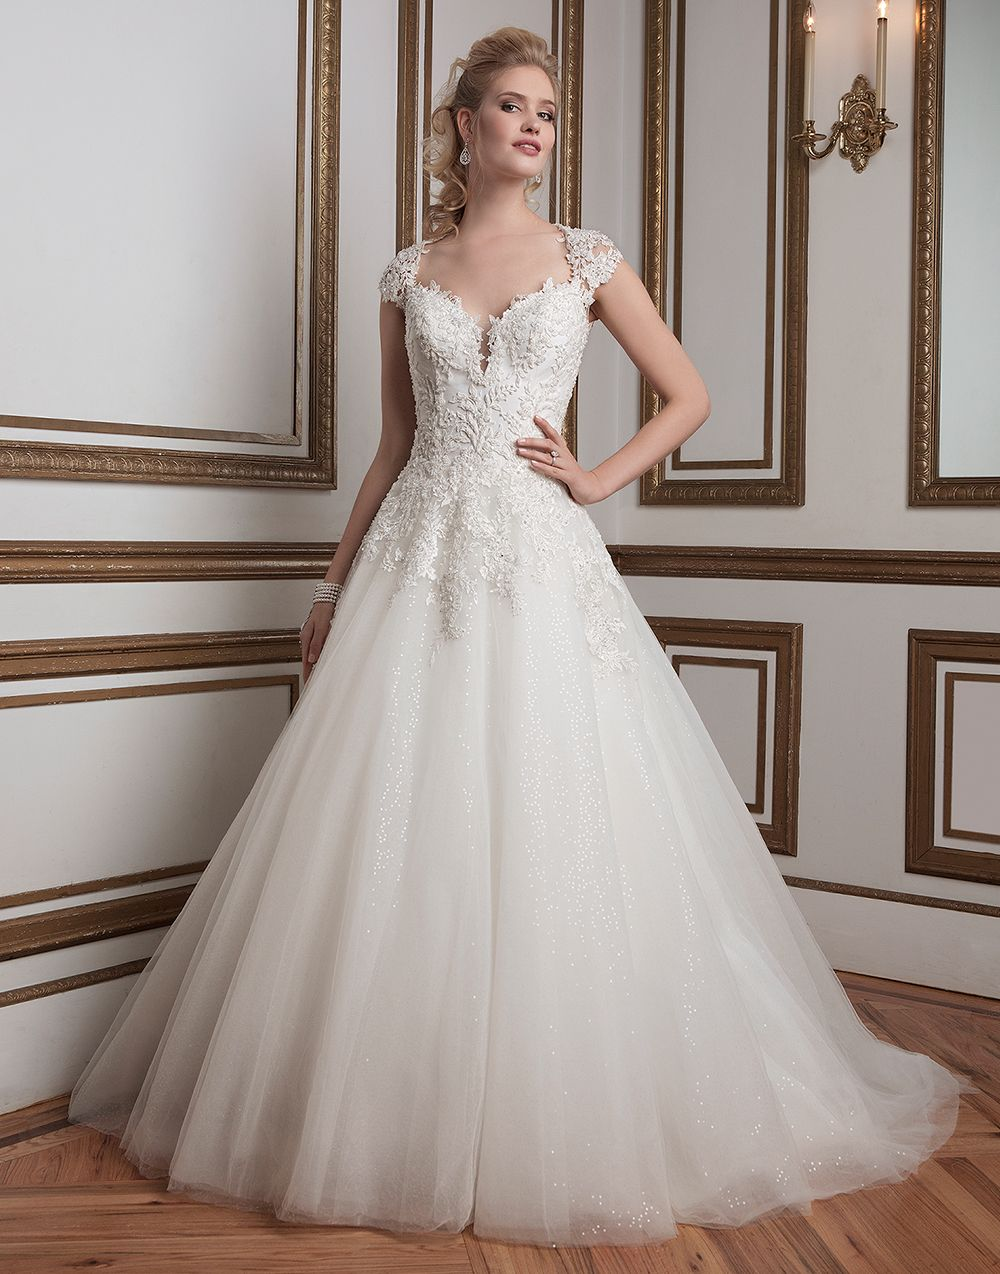 queen wedding dresses justin wedding dresses style 8807 beaded lace 6933